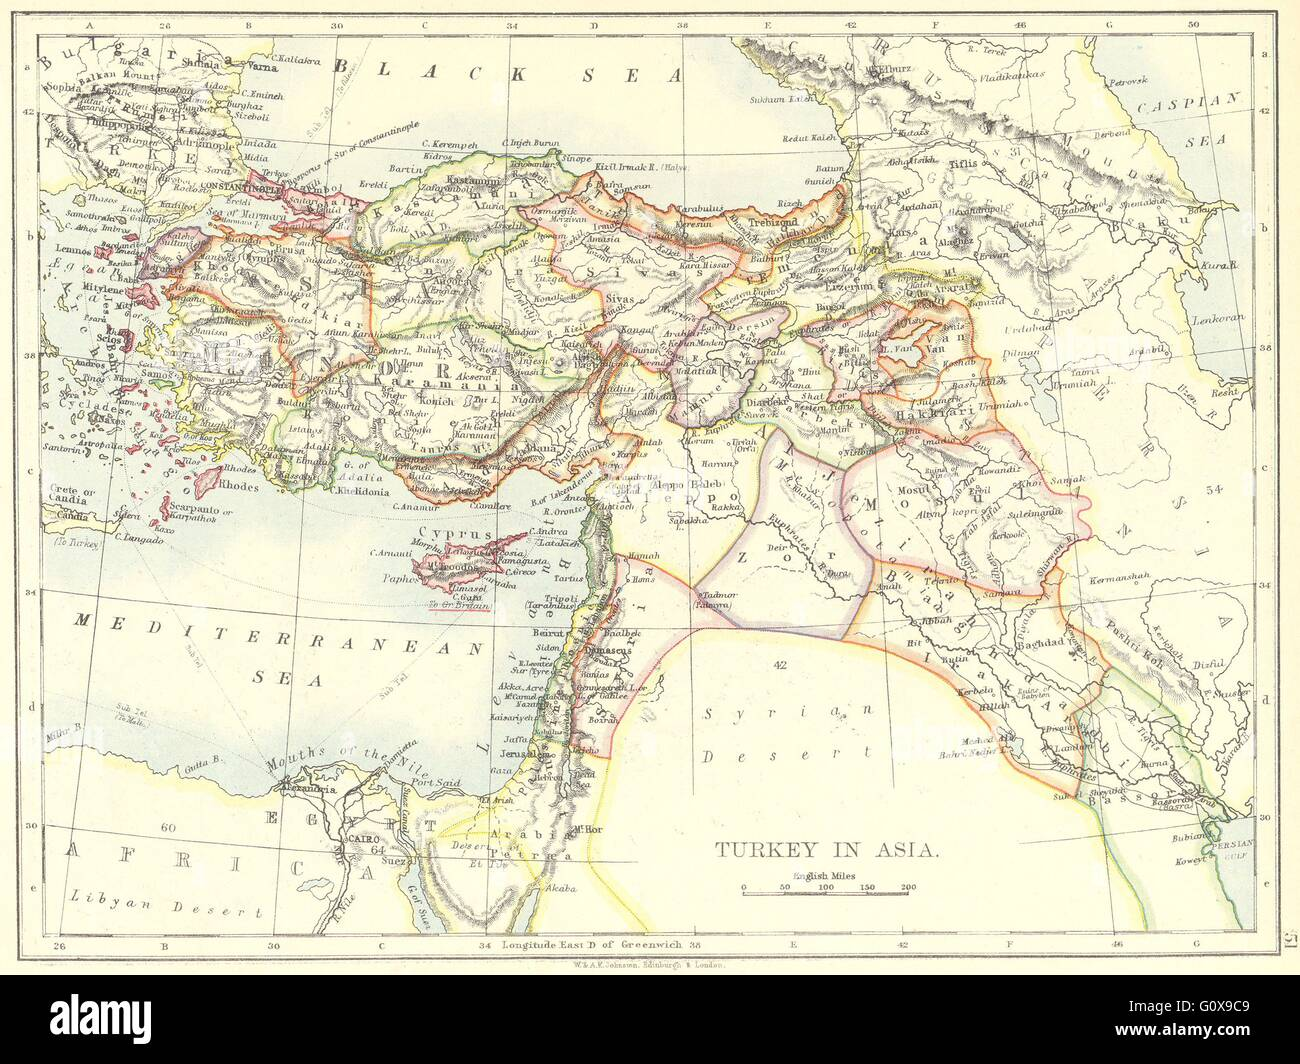 Turkey turkey in asia iraq israel jordan syria iran 1897 stock turkey turkey in asia iraq israel jordan syria iran 1897 antique map gumiabroncs Gallery